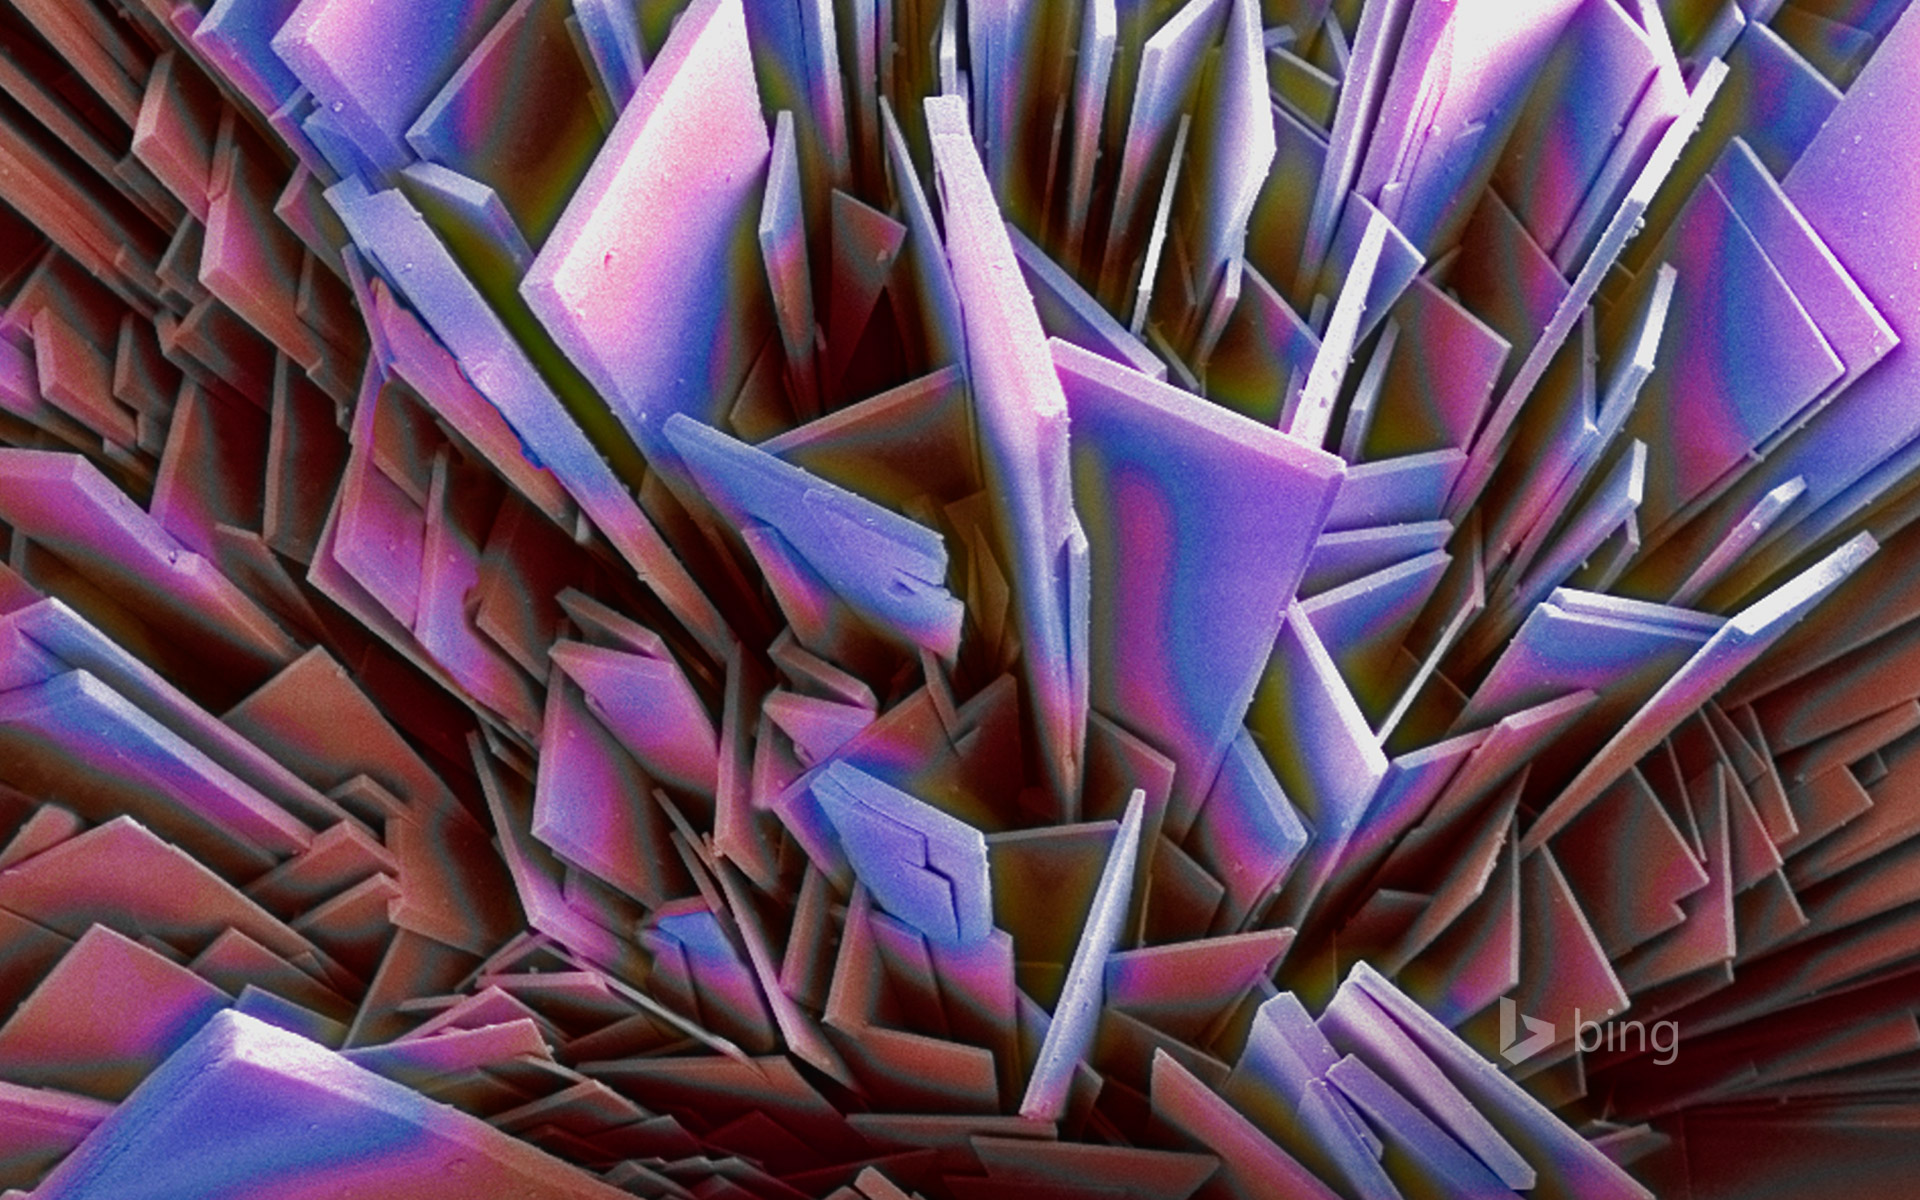 Magnification of phosphate crystals